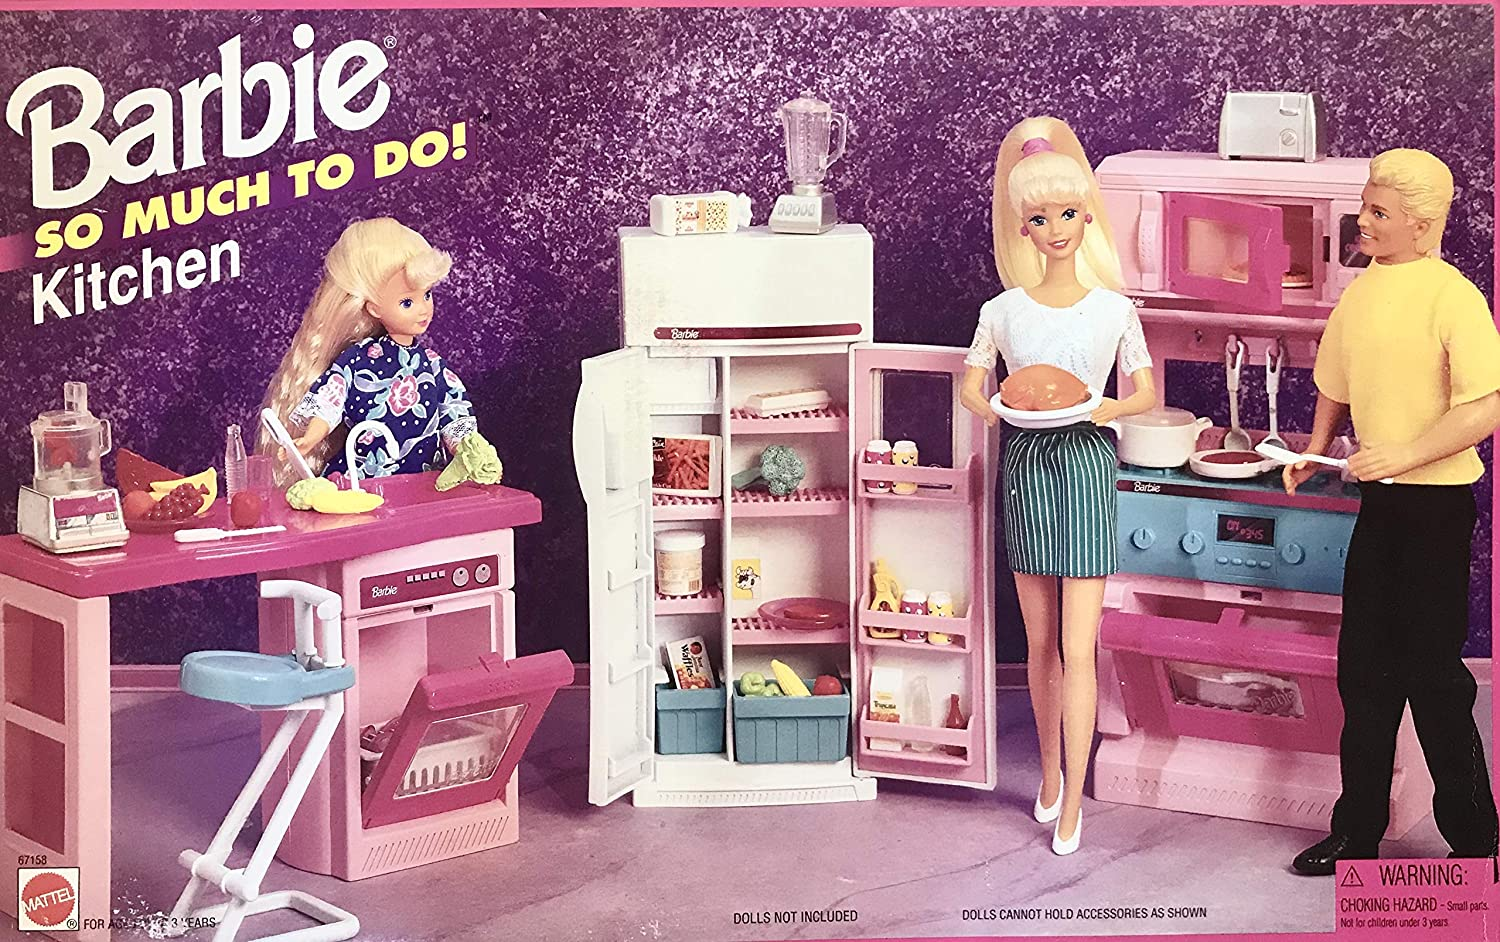 Amazon Com Barbie So Much To Do Kitchen Playset W Cooking Unit With Stove Refrigerator Island With Dishwasher More 1995 Arcotoys Mattel Toys Games